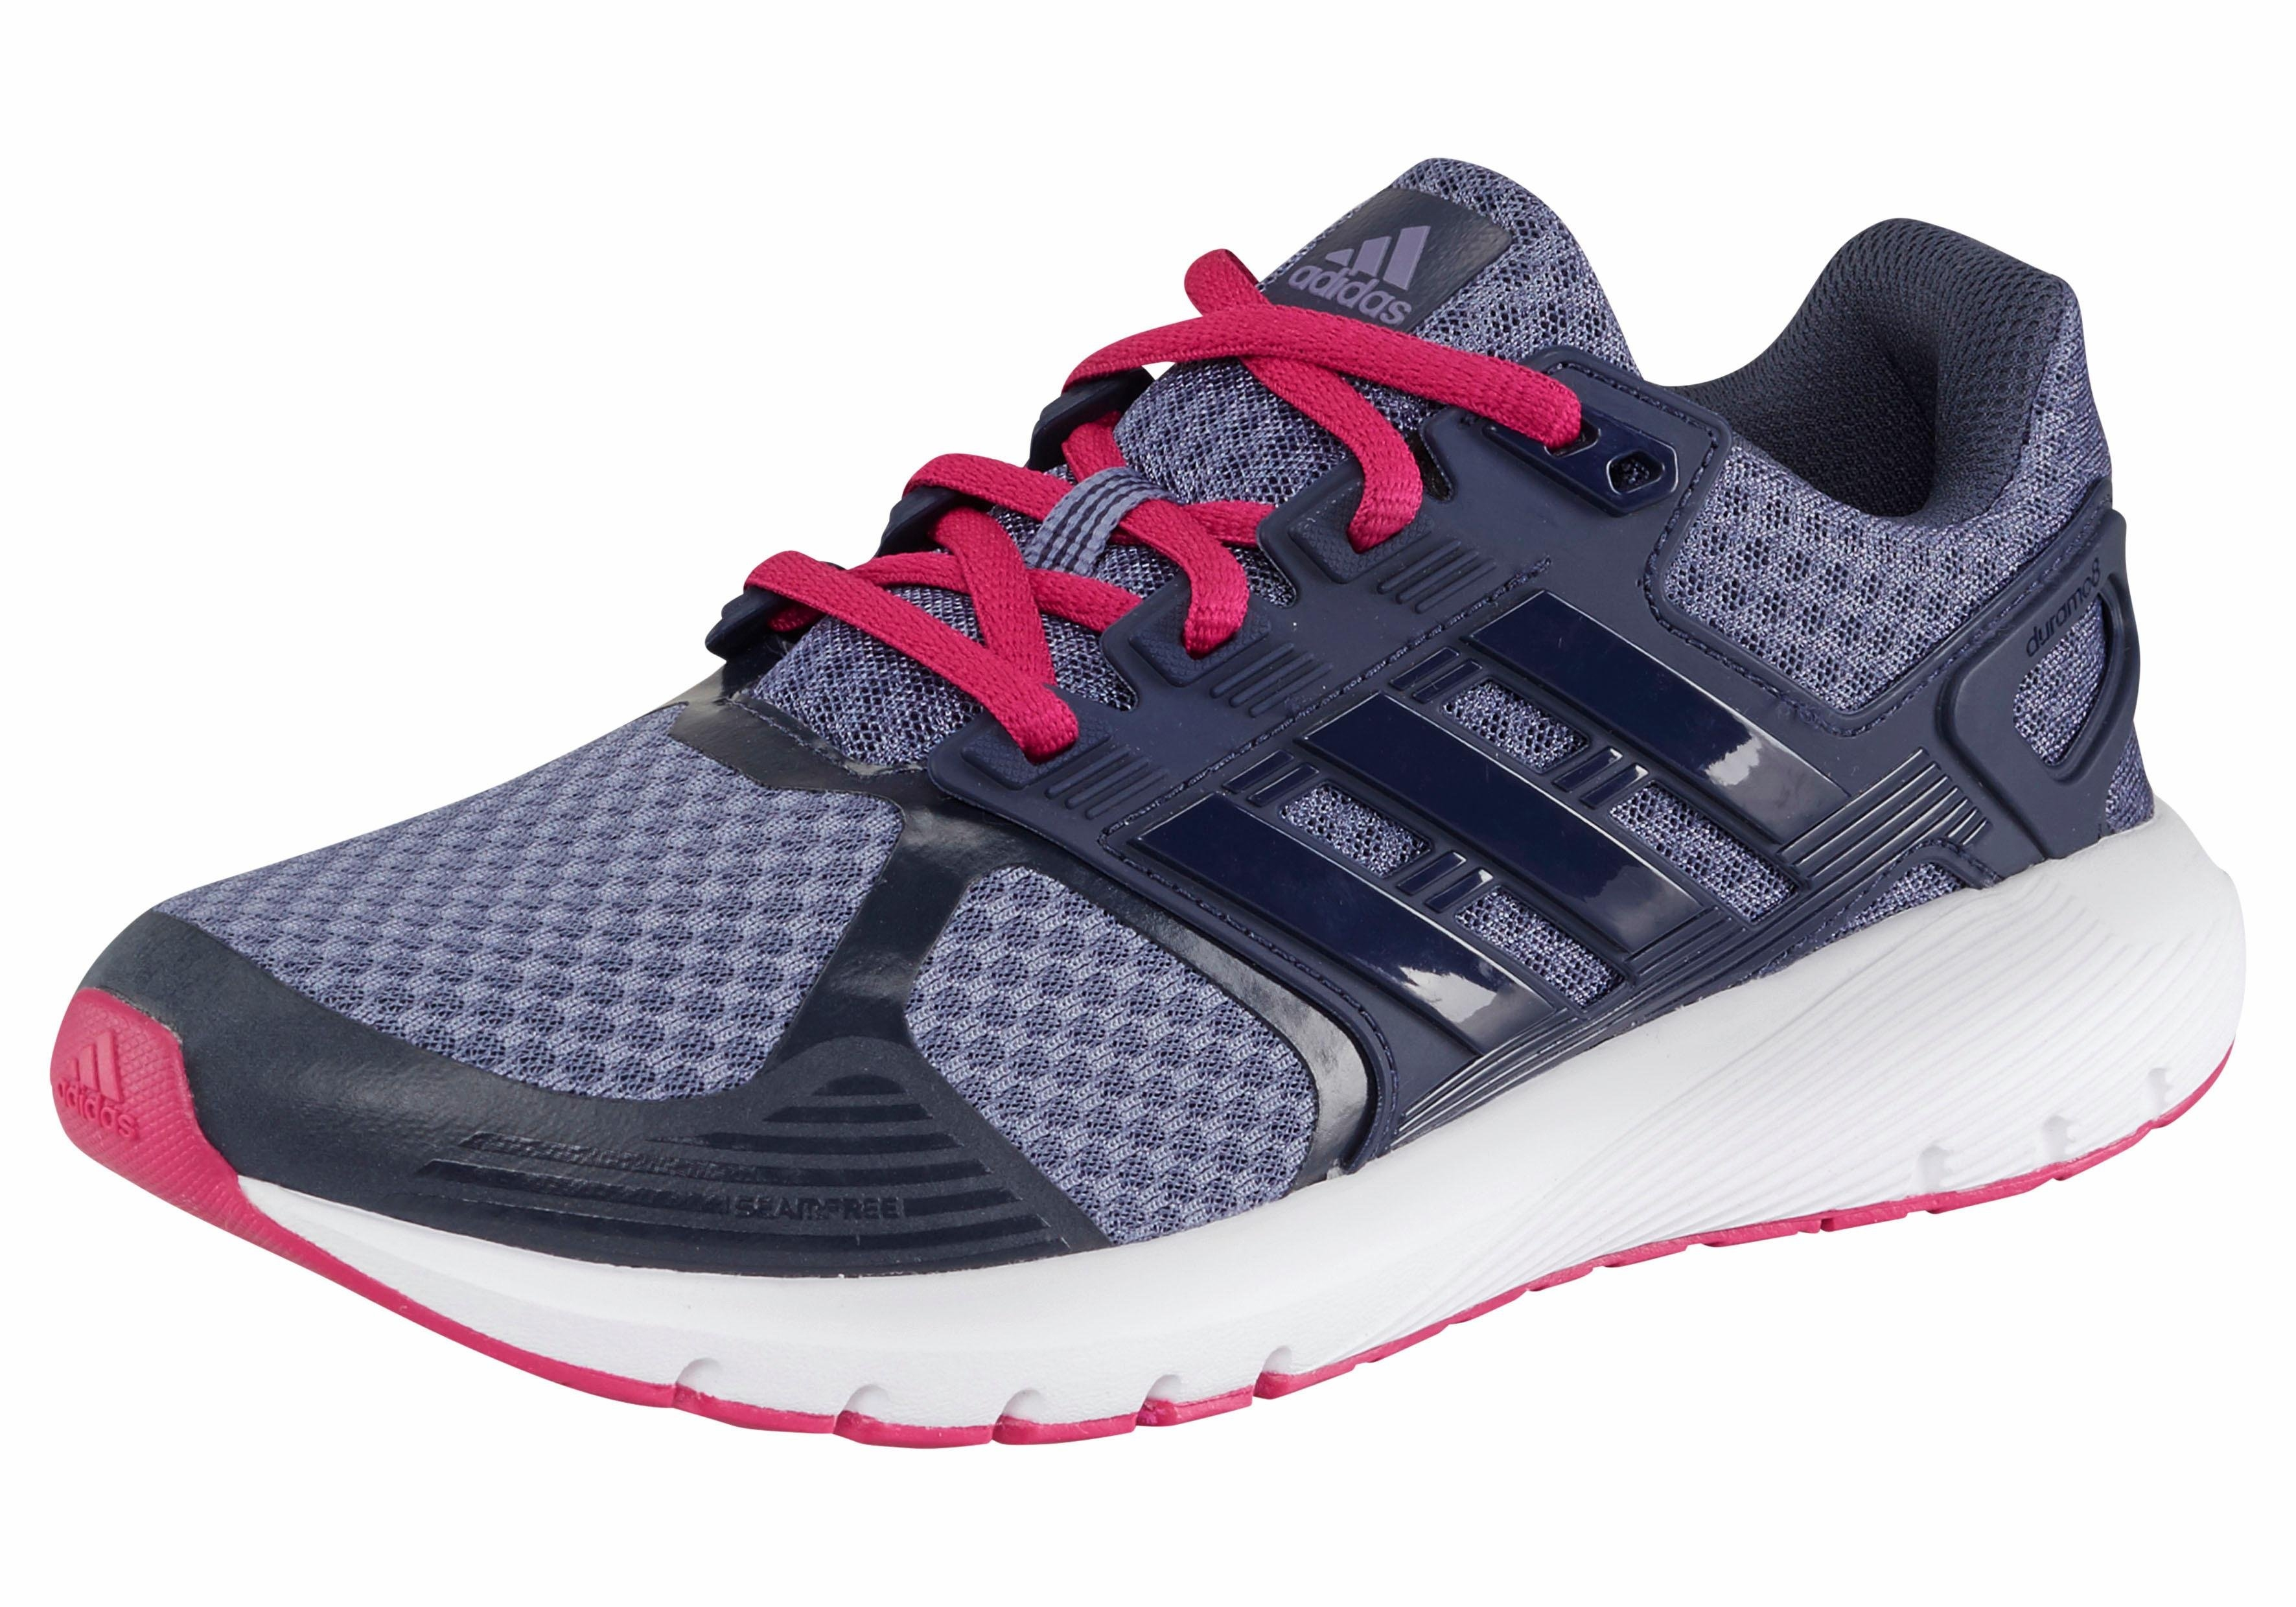 sports shoes 12966 fcb96 Afbeeldingsbron adidas Performance runningschoenen »Duramo 8 W«